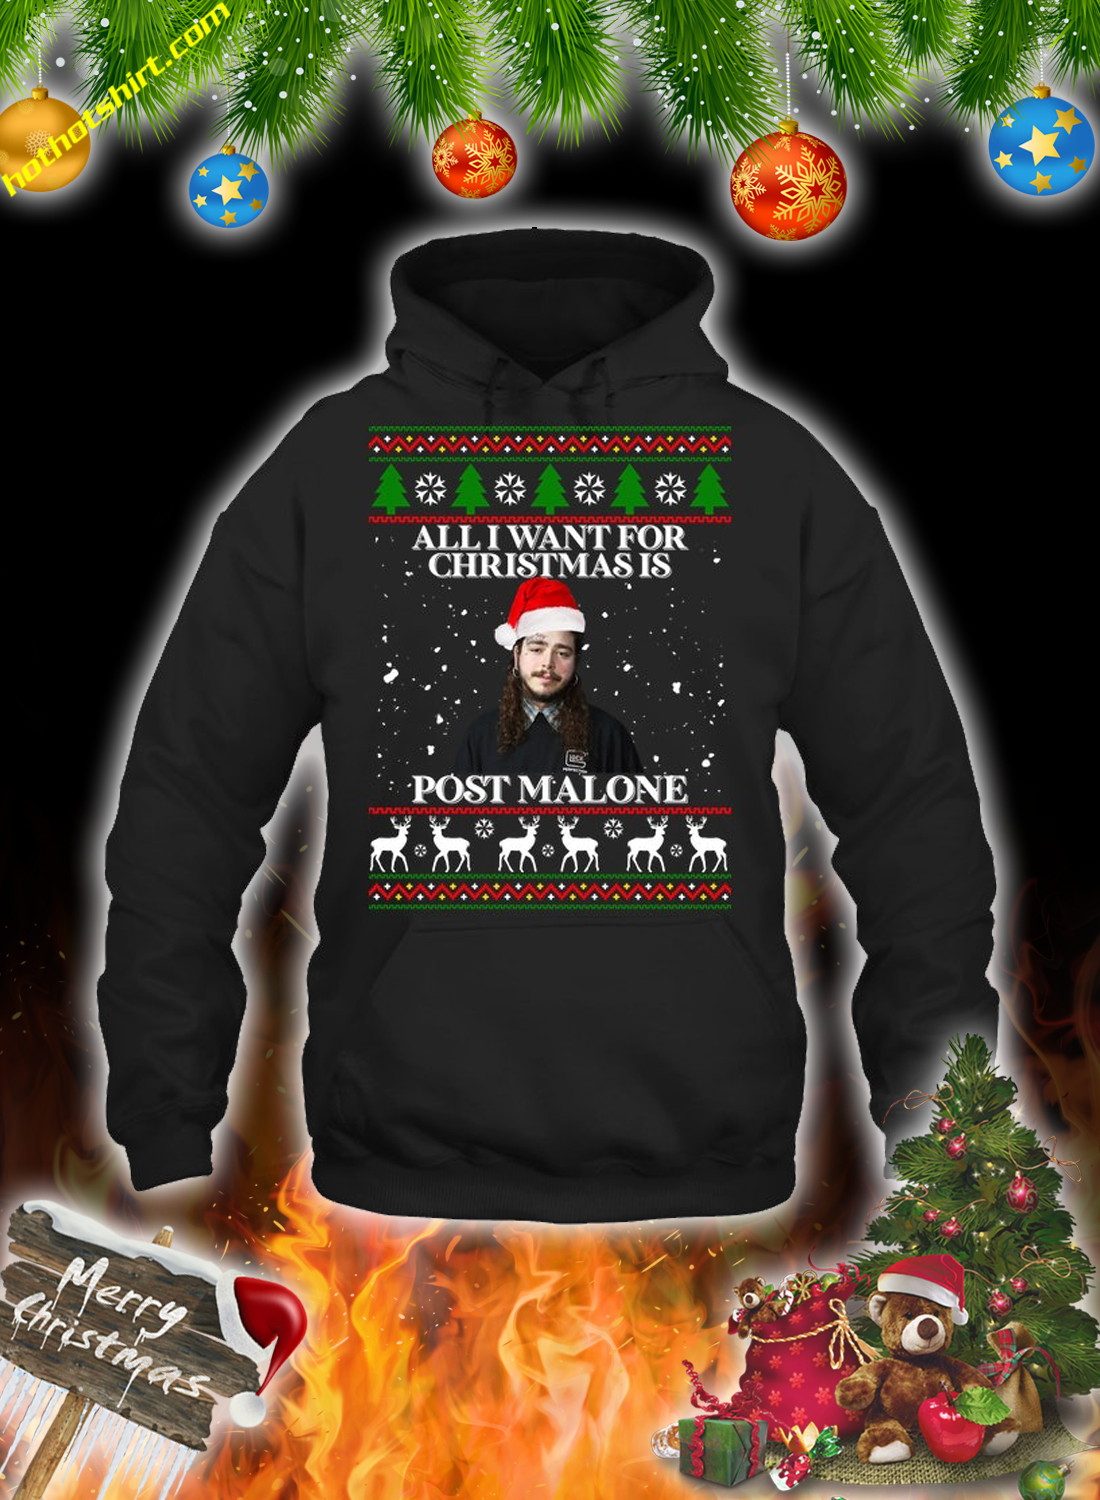 All i want for christmas is post malone christmas sweatshirt and jumper 1